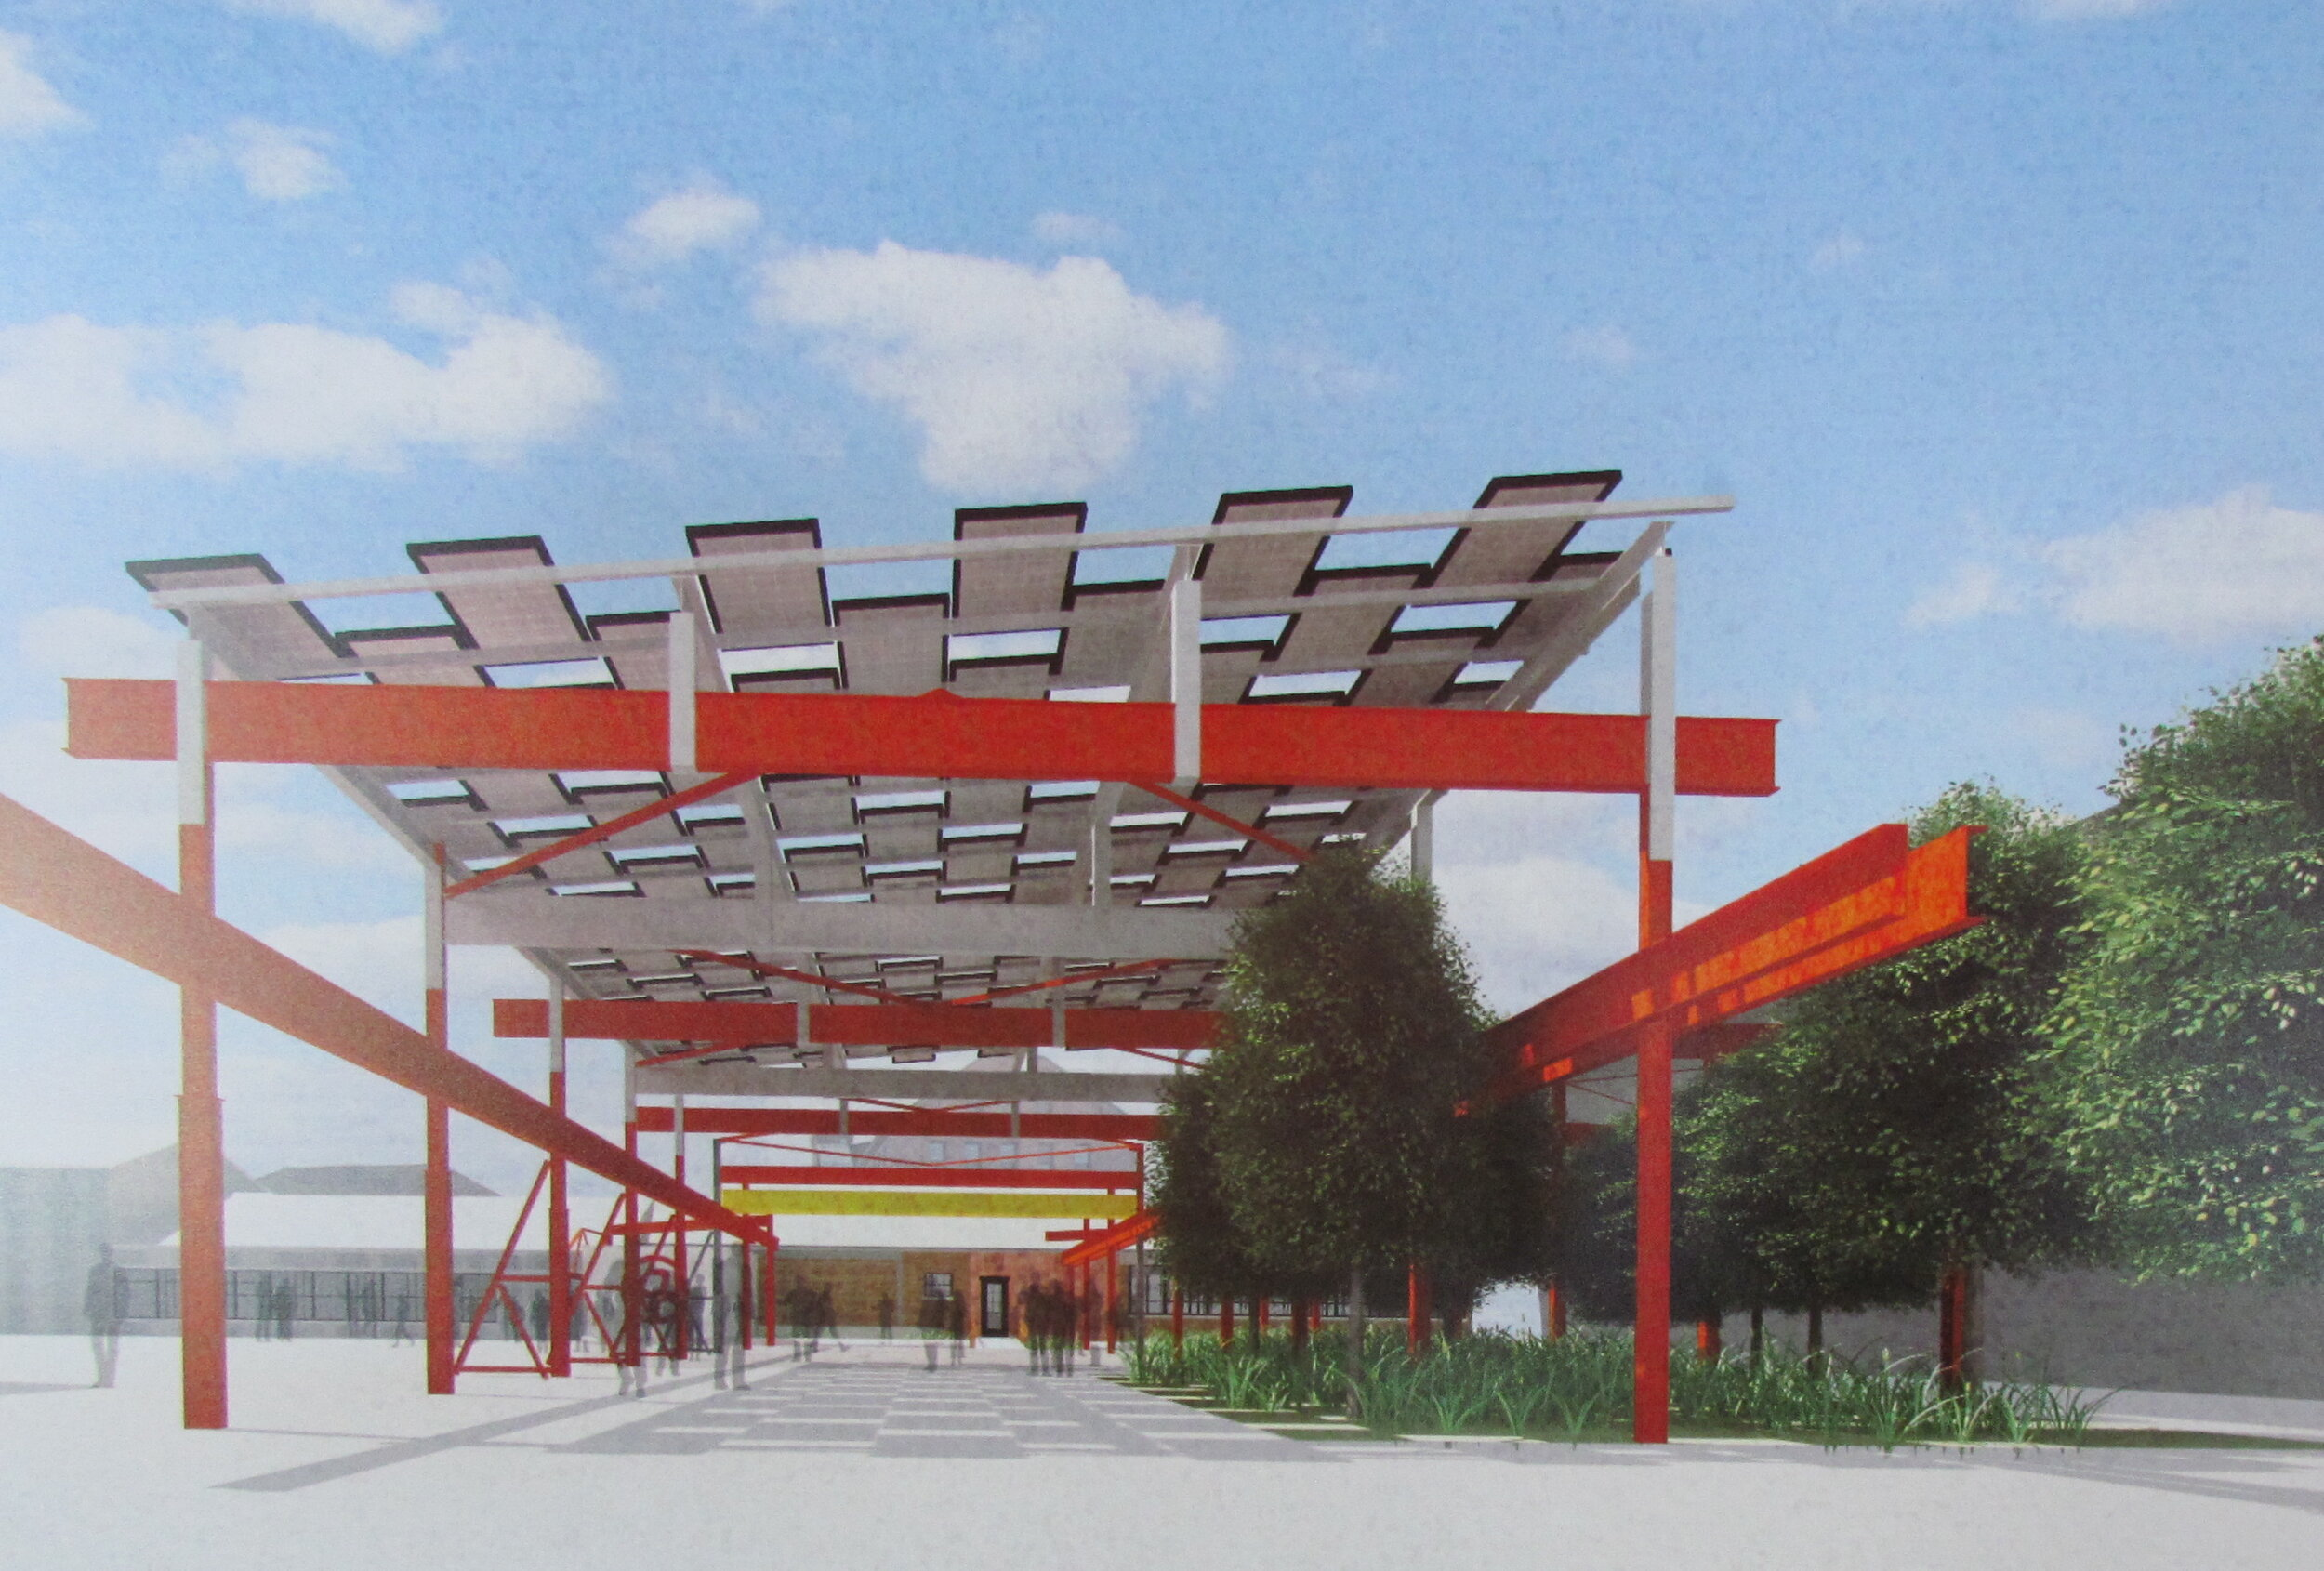 A rendering of the gantry solar canopy uses a gauze design the allows light to reach vegetation. (The Steel Yard, KITE Architects, and Newport Renewables)